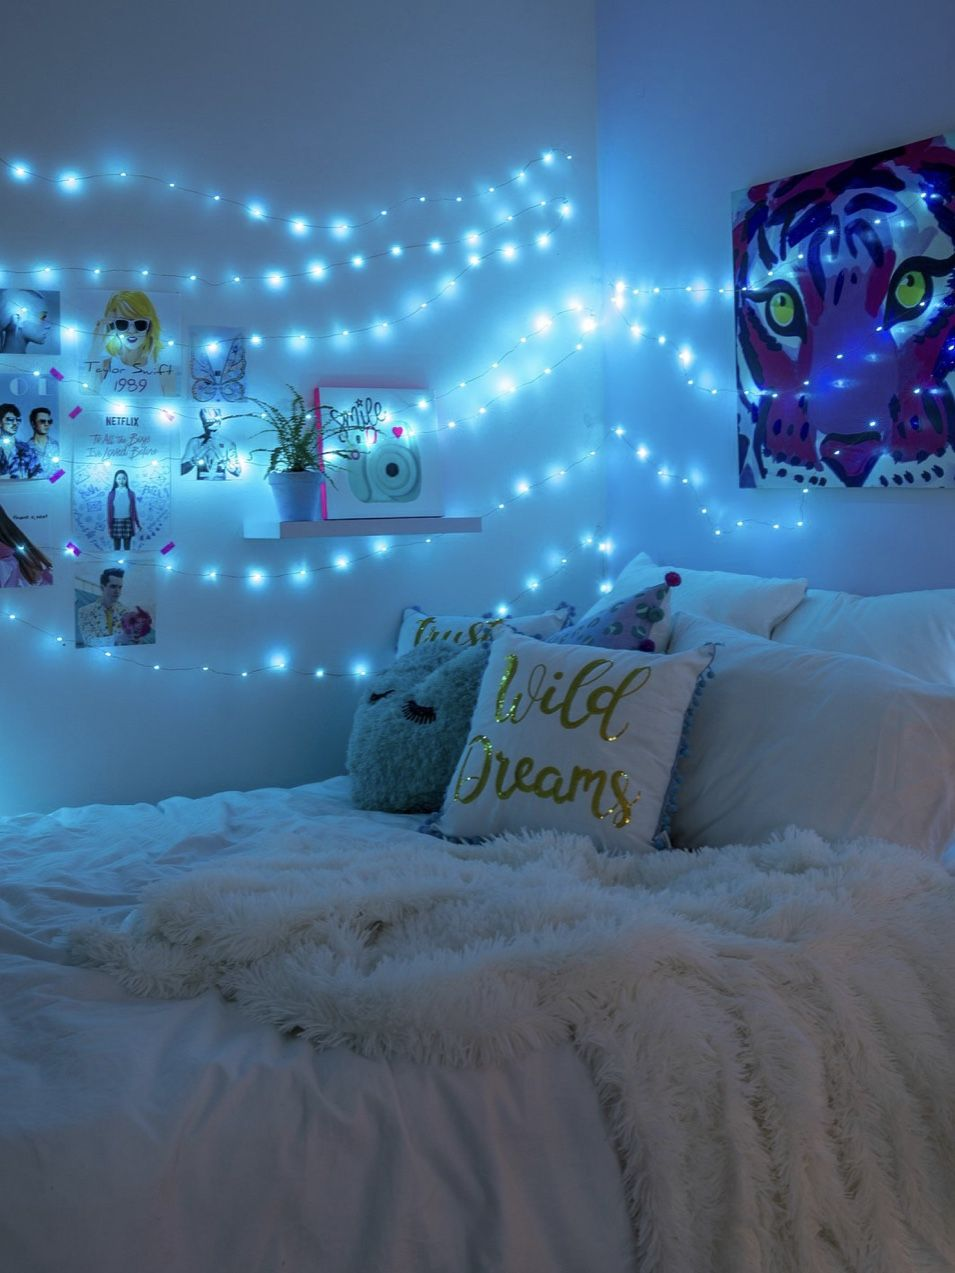 So Vibey 🦋 Fairylights Bluefairylights Tumblrroom Tumblrroomaesthetic Vscoroom Dreamroom